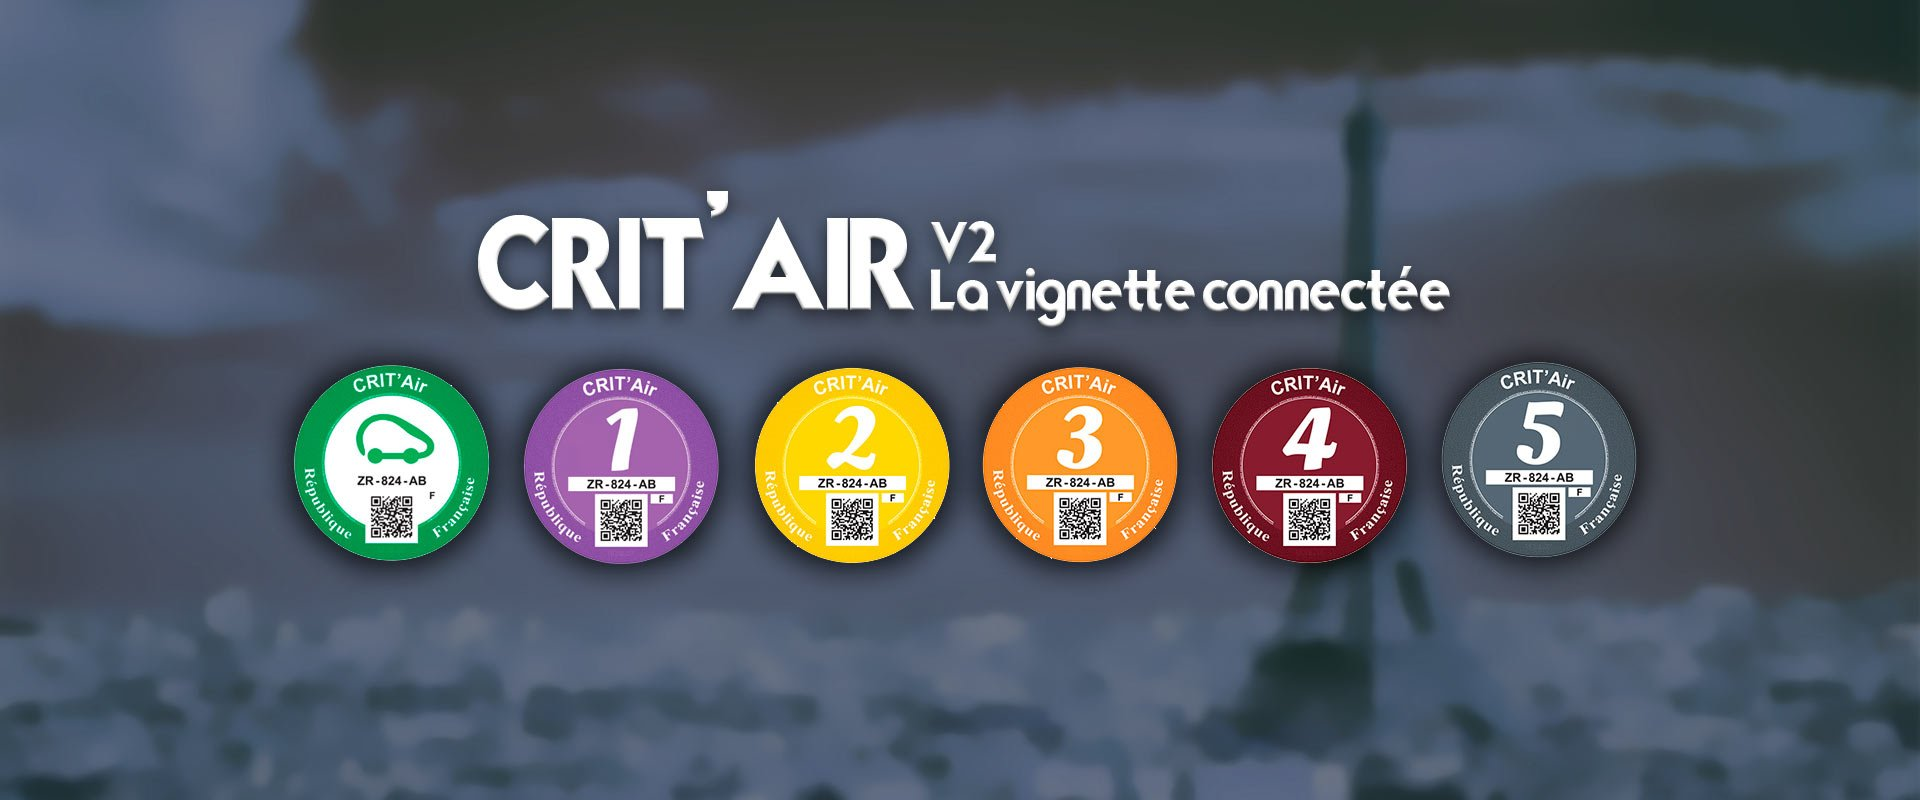 vignette Crit'Air connectée